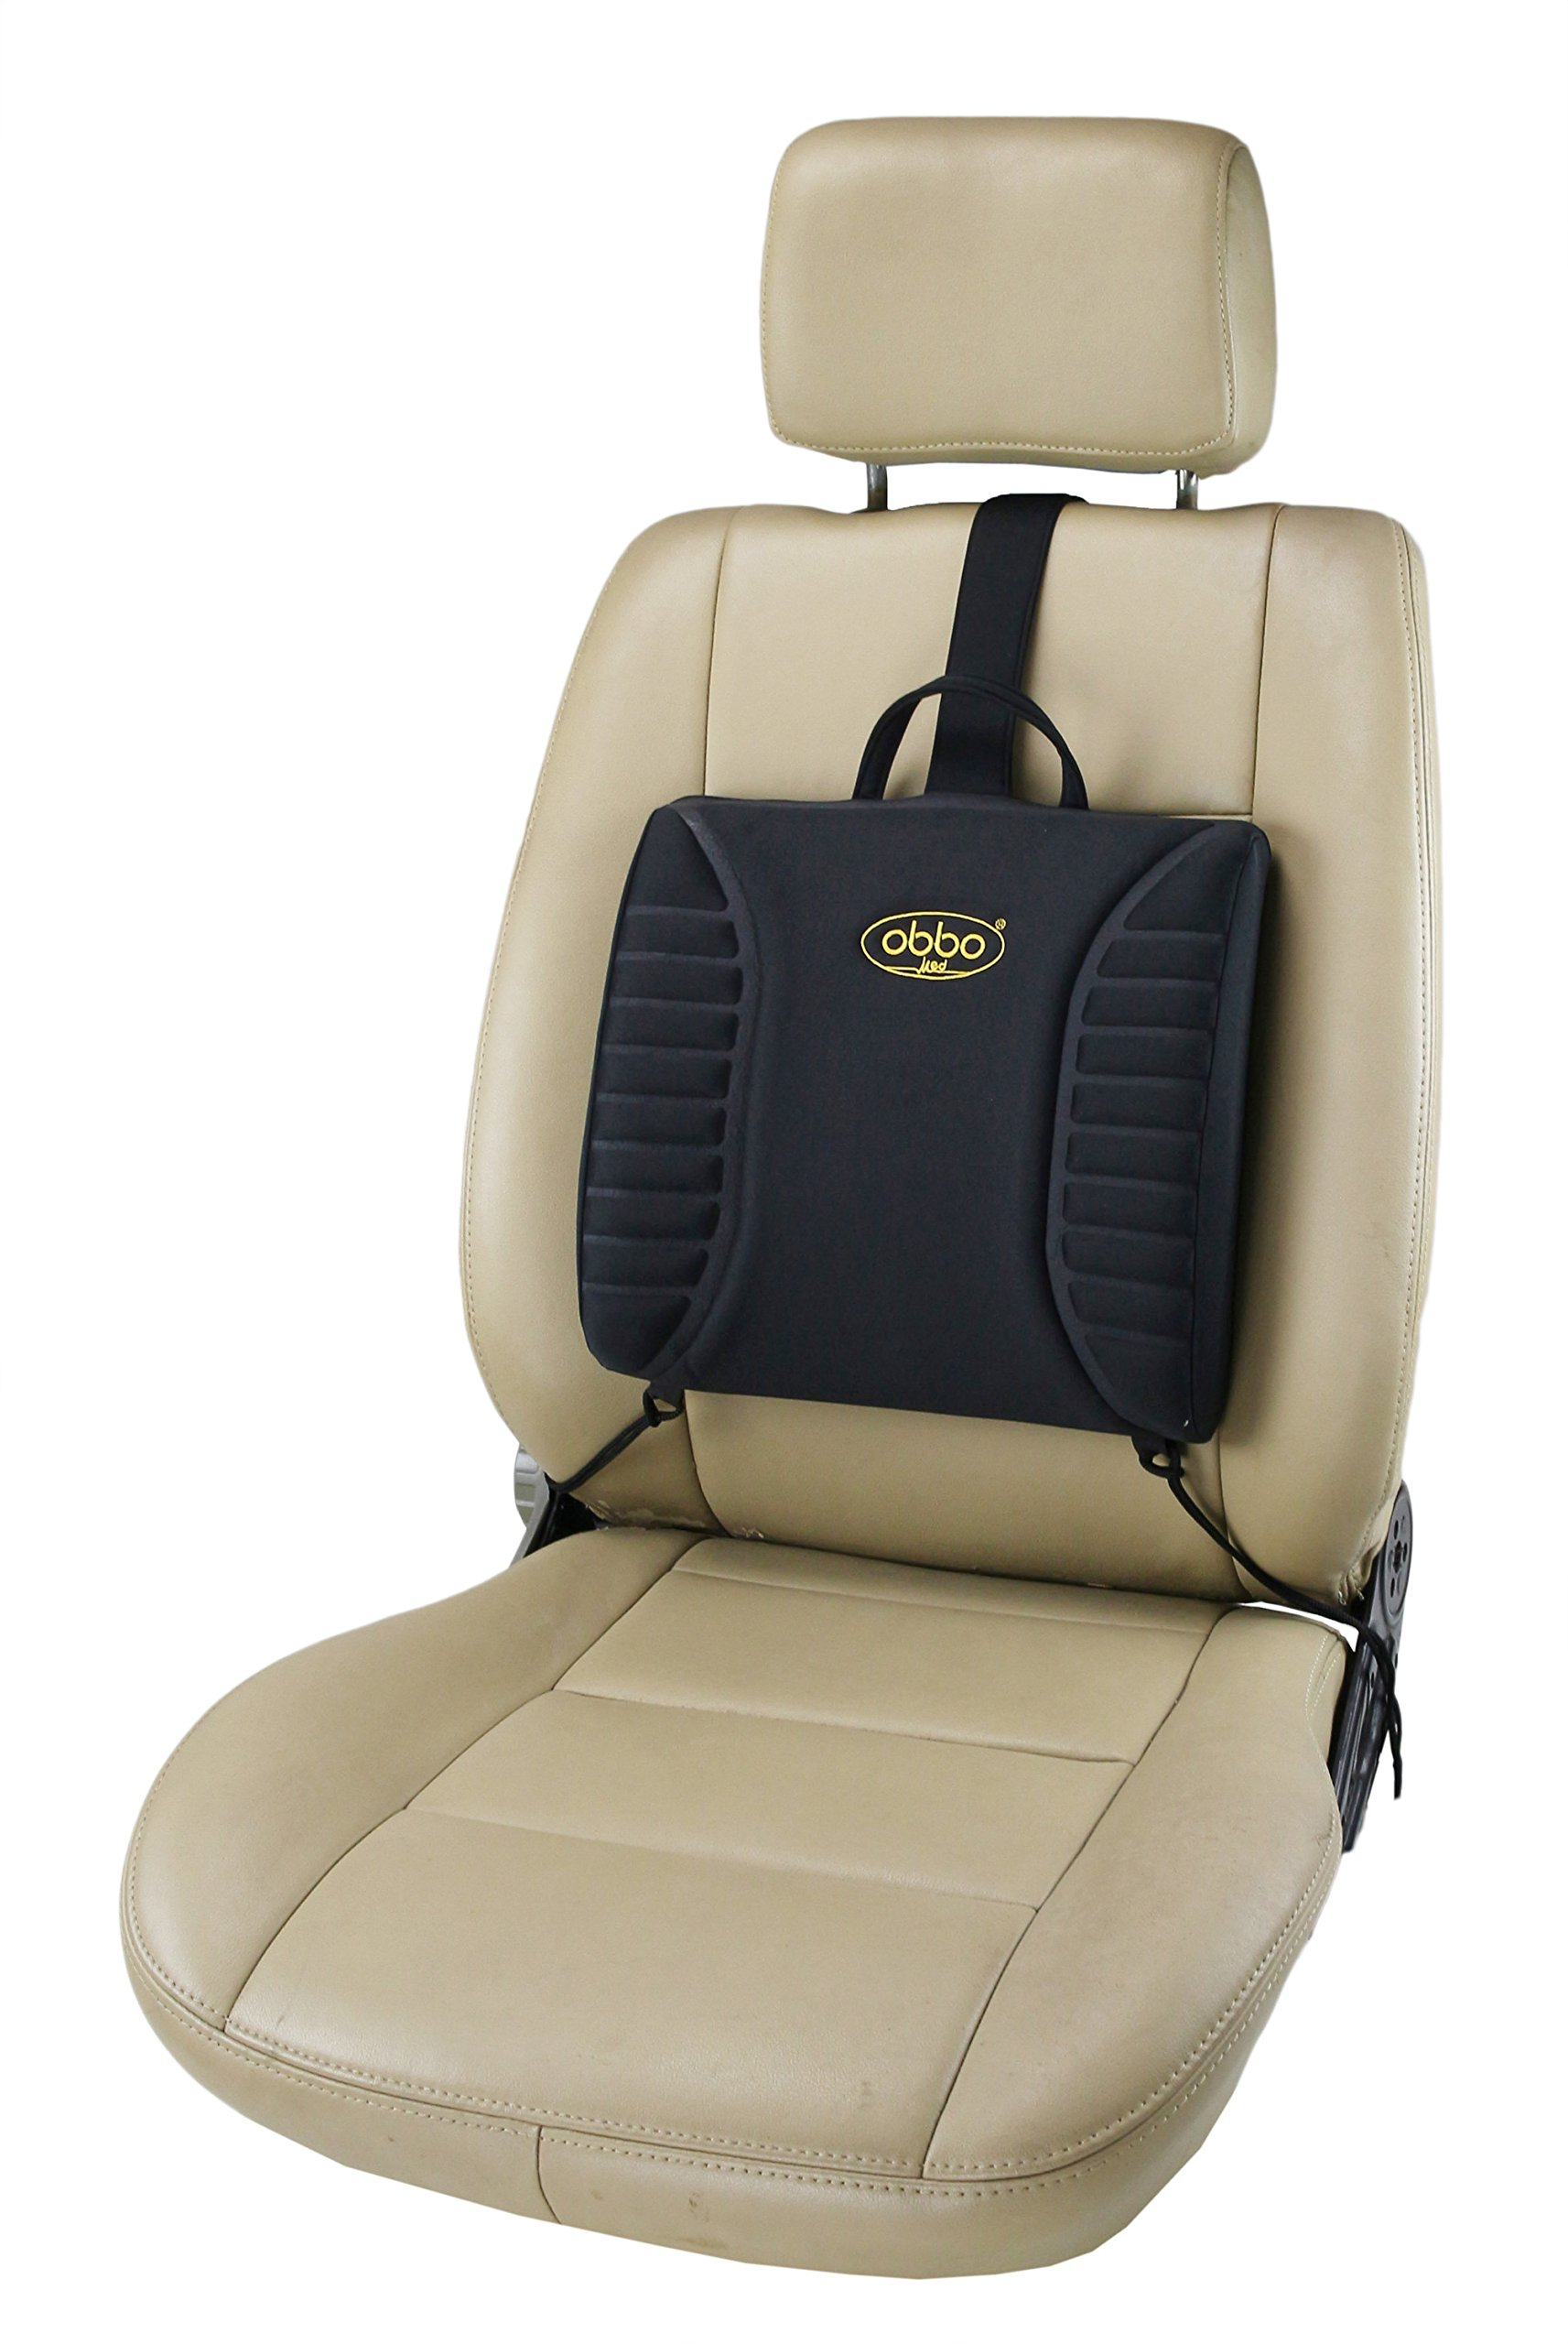 ObboMed SU-3120S Travel Pro-Lumbar Seat Cushion, Support Back/Waist for Long Drive/Sitting, Portable, Lightweight with Easy Positioning Counterweight, Special Thickness for Car, Automobile, Vehicle